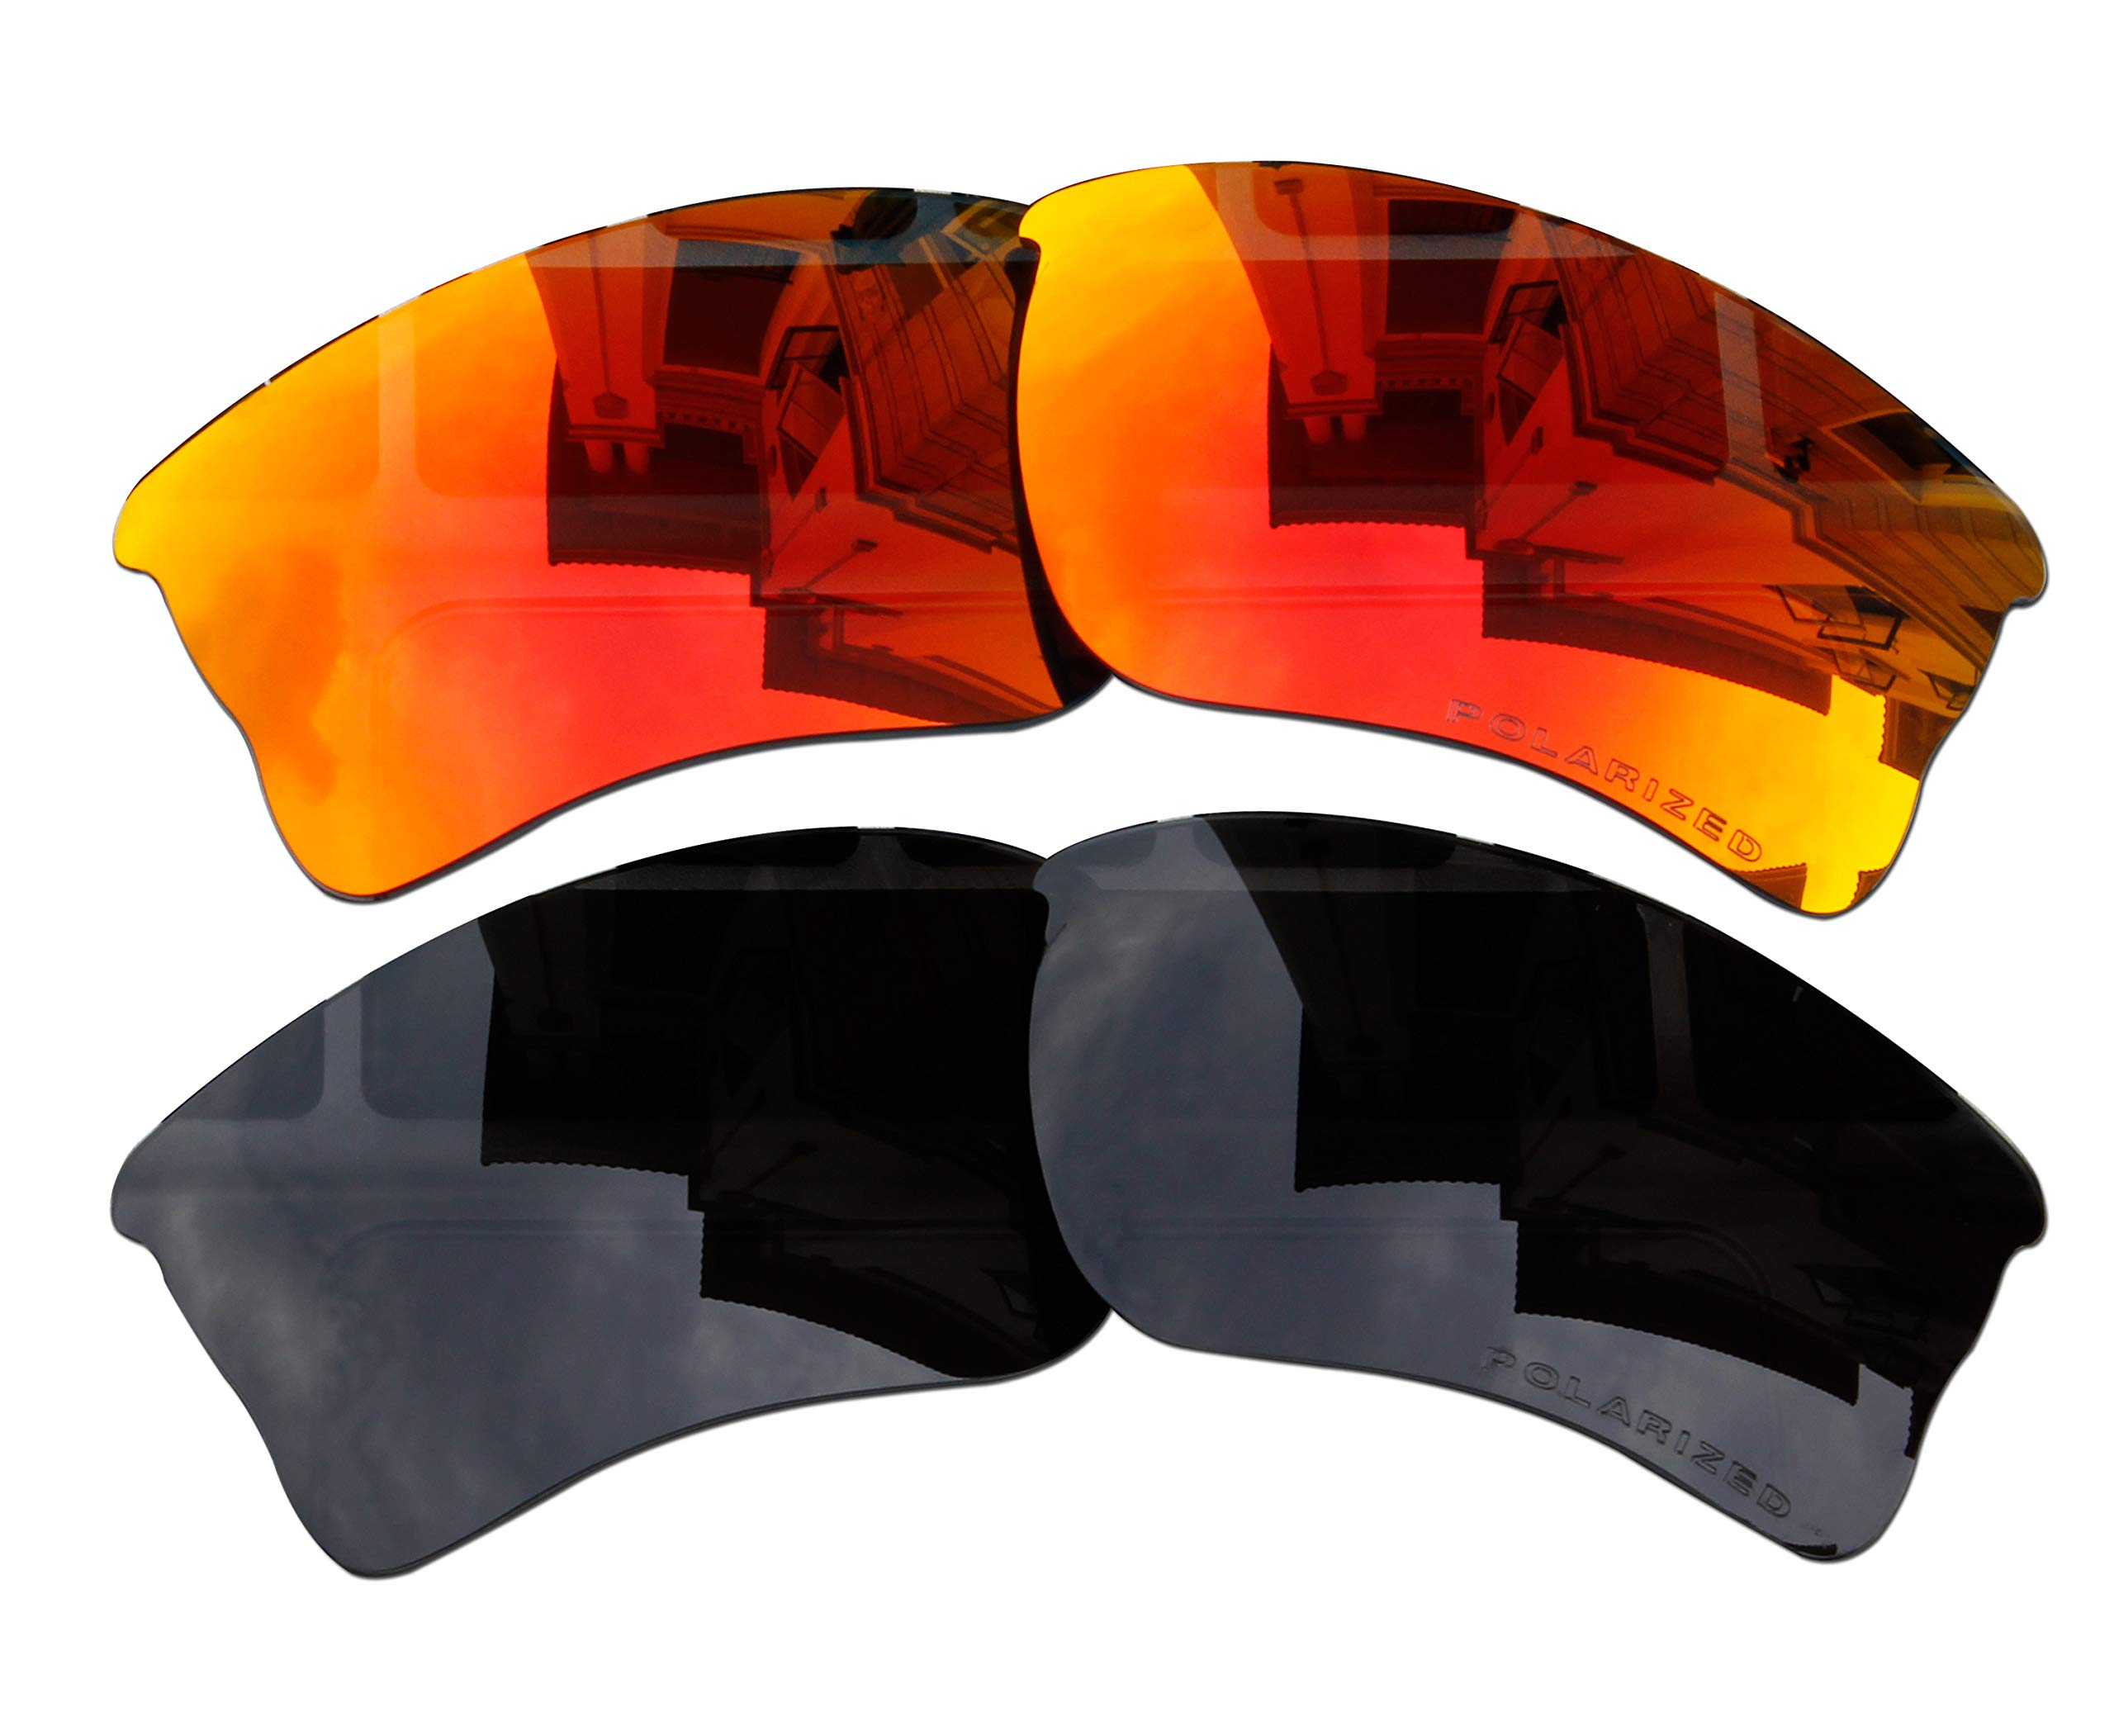 2 Pairs Polarized Lenses Replacement Red & Black for Oakley Quarter Jacket Sunglasses by BVANQ